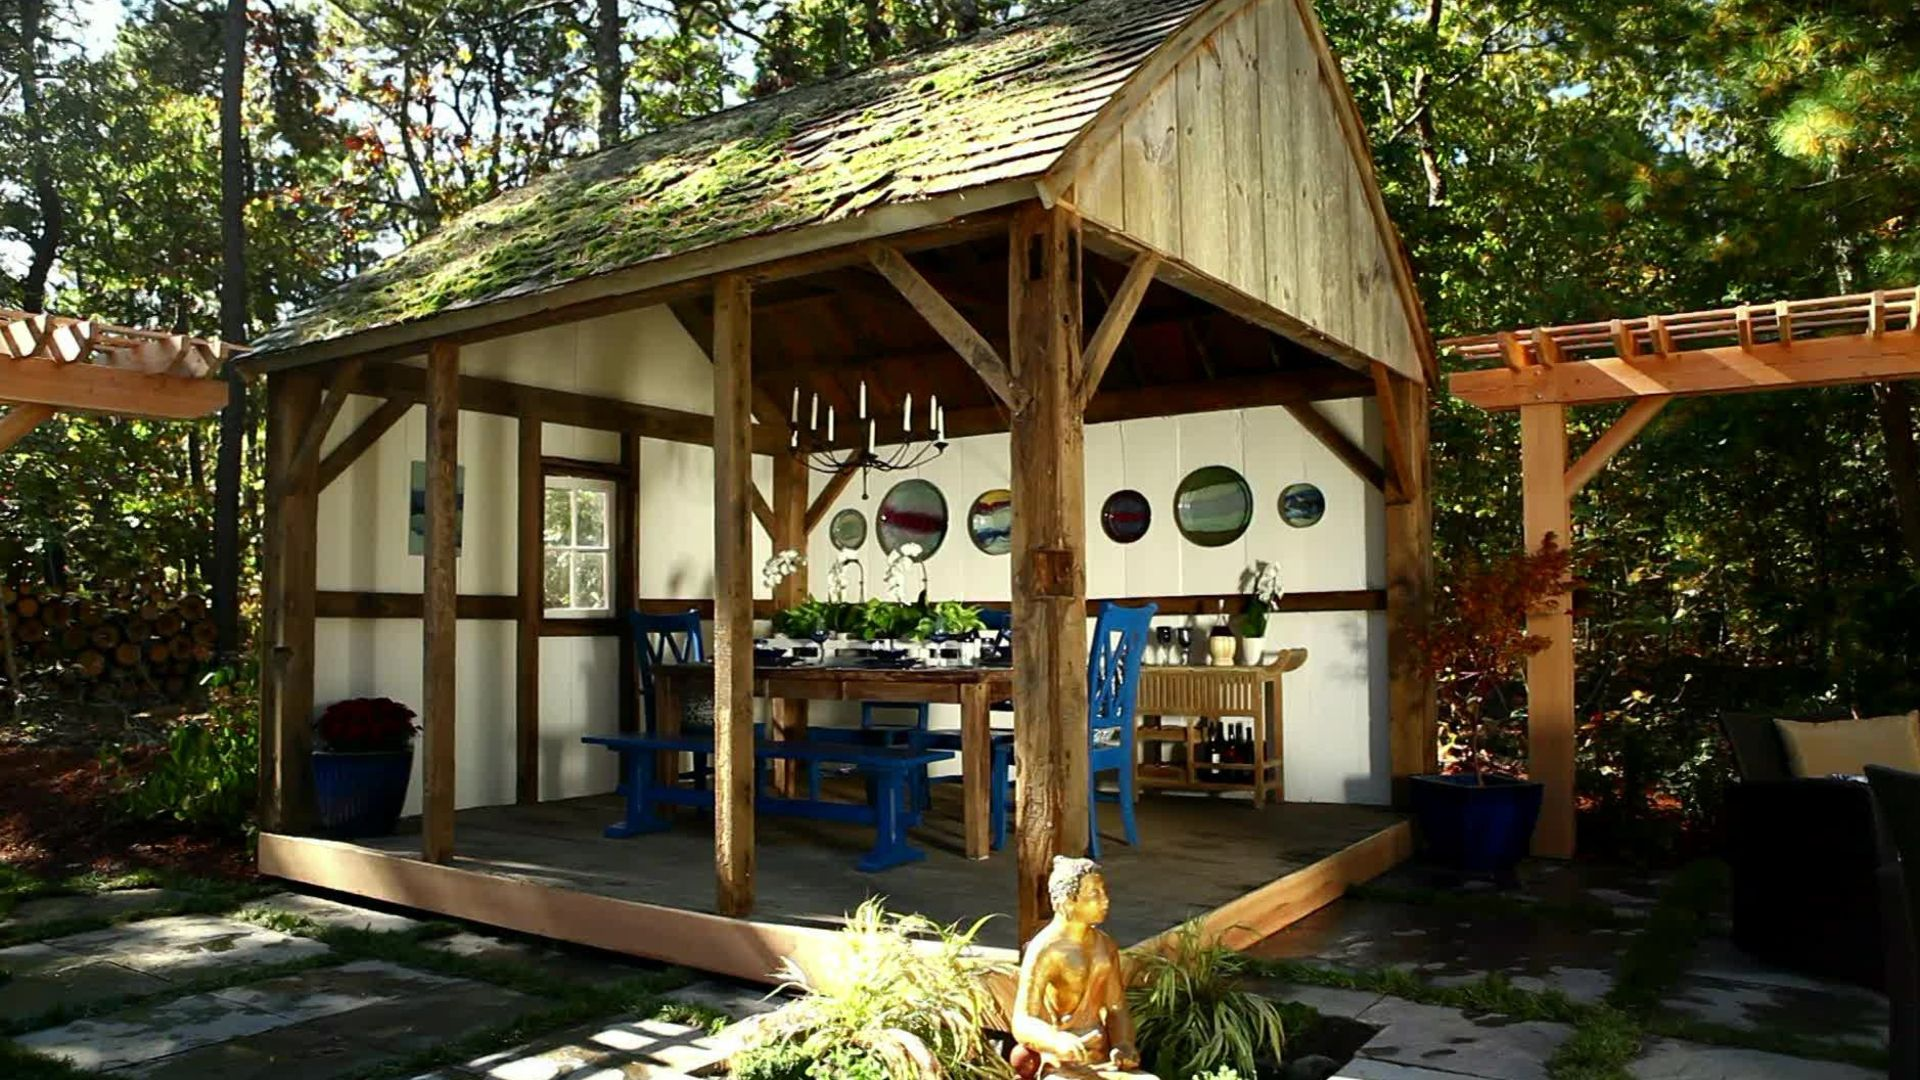 decorative backyard open shed google search backyard landscape